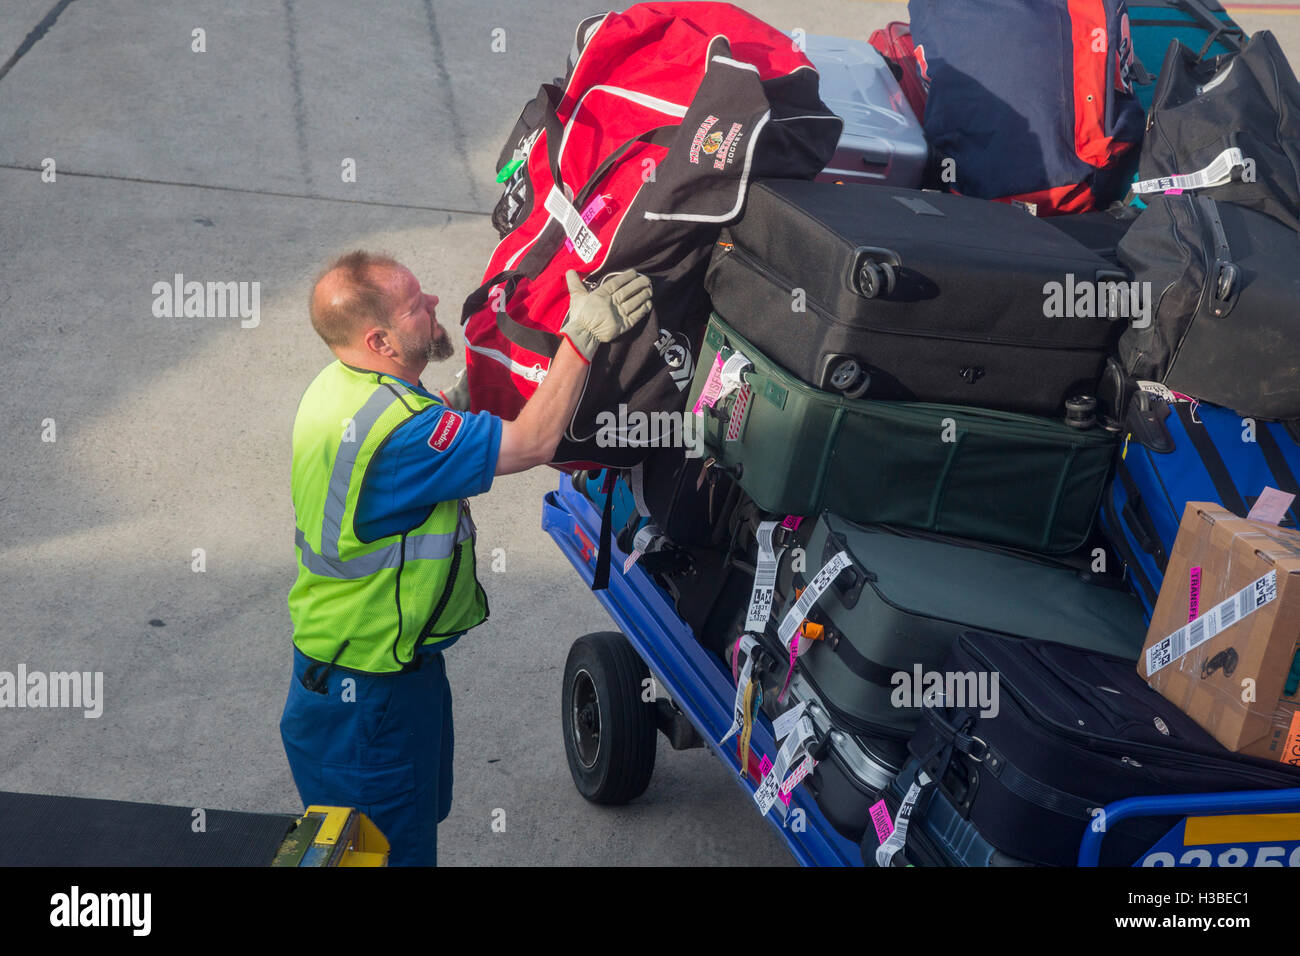 Detroit, Michigan - A worker loads baggage onto a jet at Detroit Metro Airport. - Stock Image